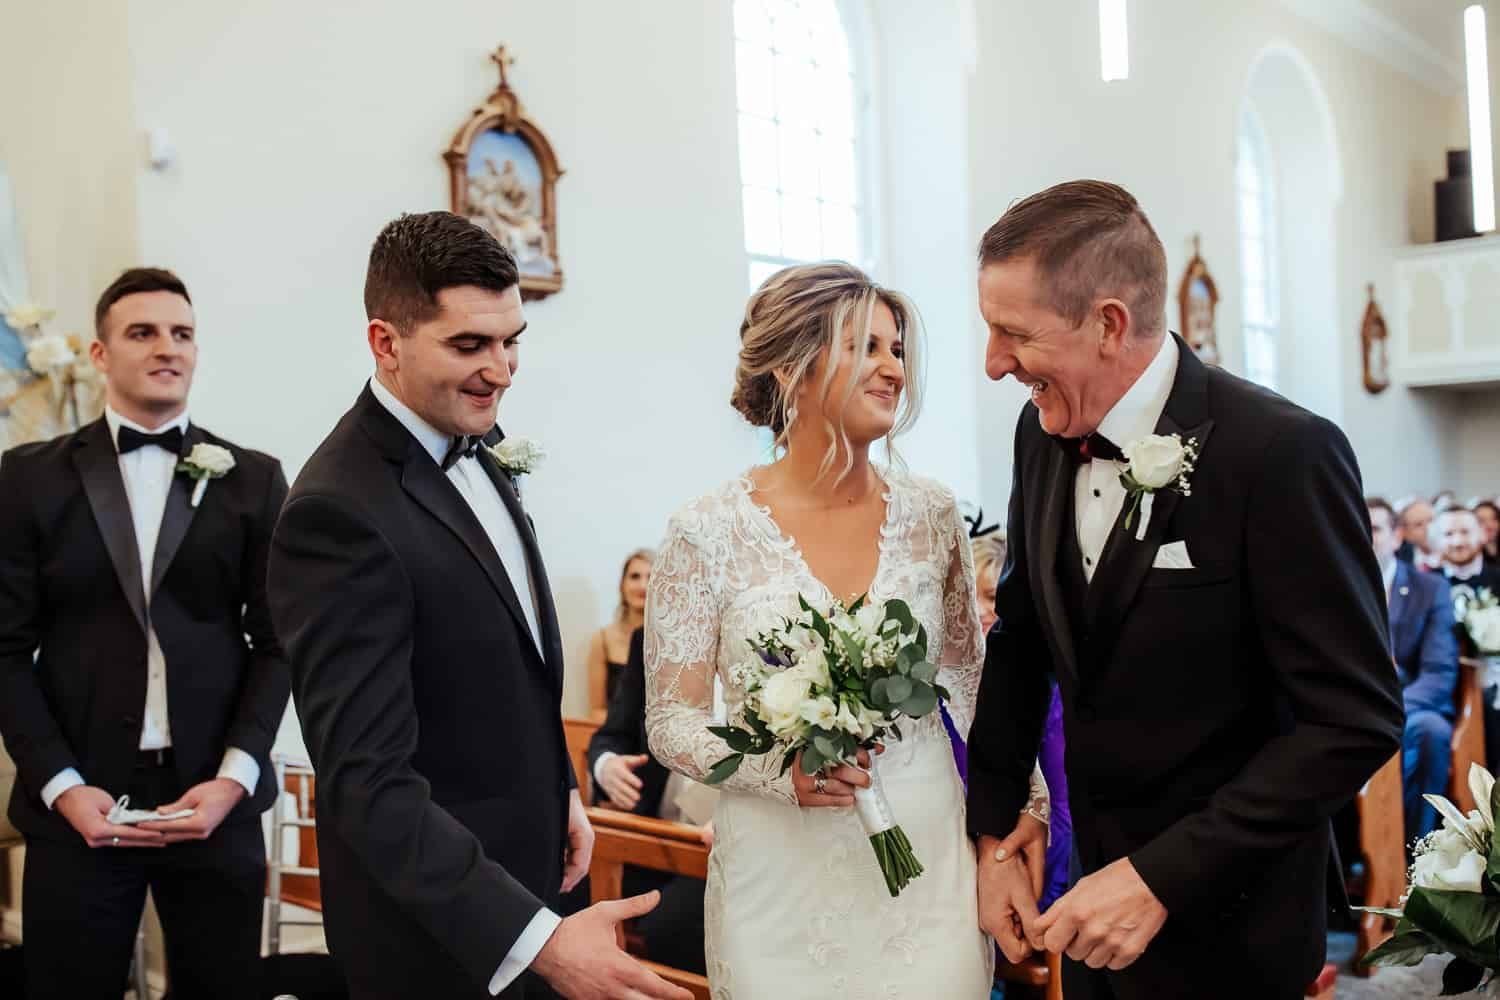 wedding ceremony at st james church bushypark galway